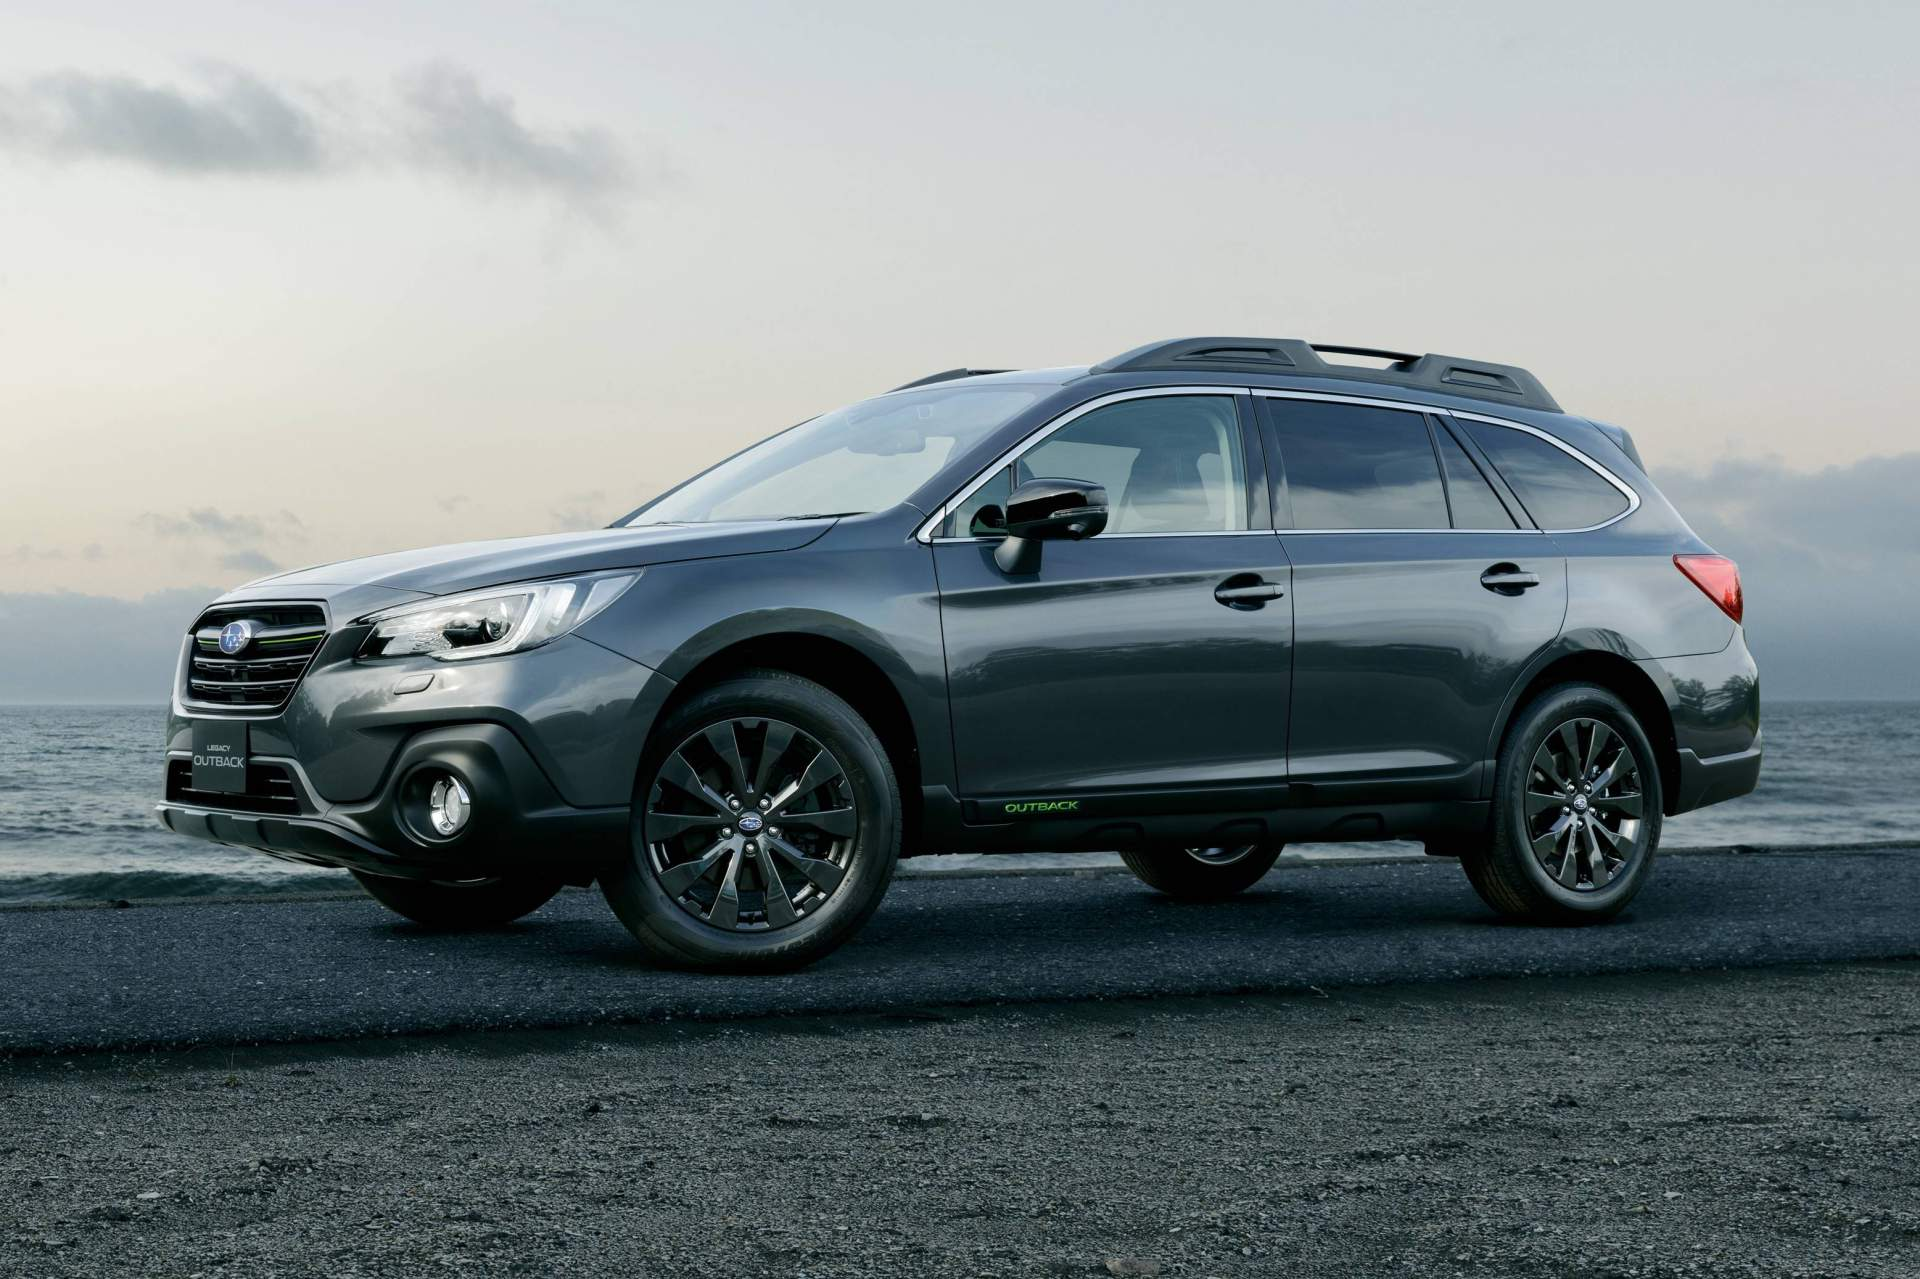 subaru-outback-x-break-dac-biet-2.jpeg